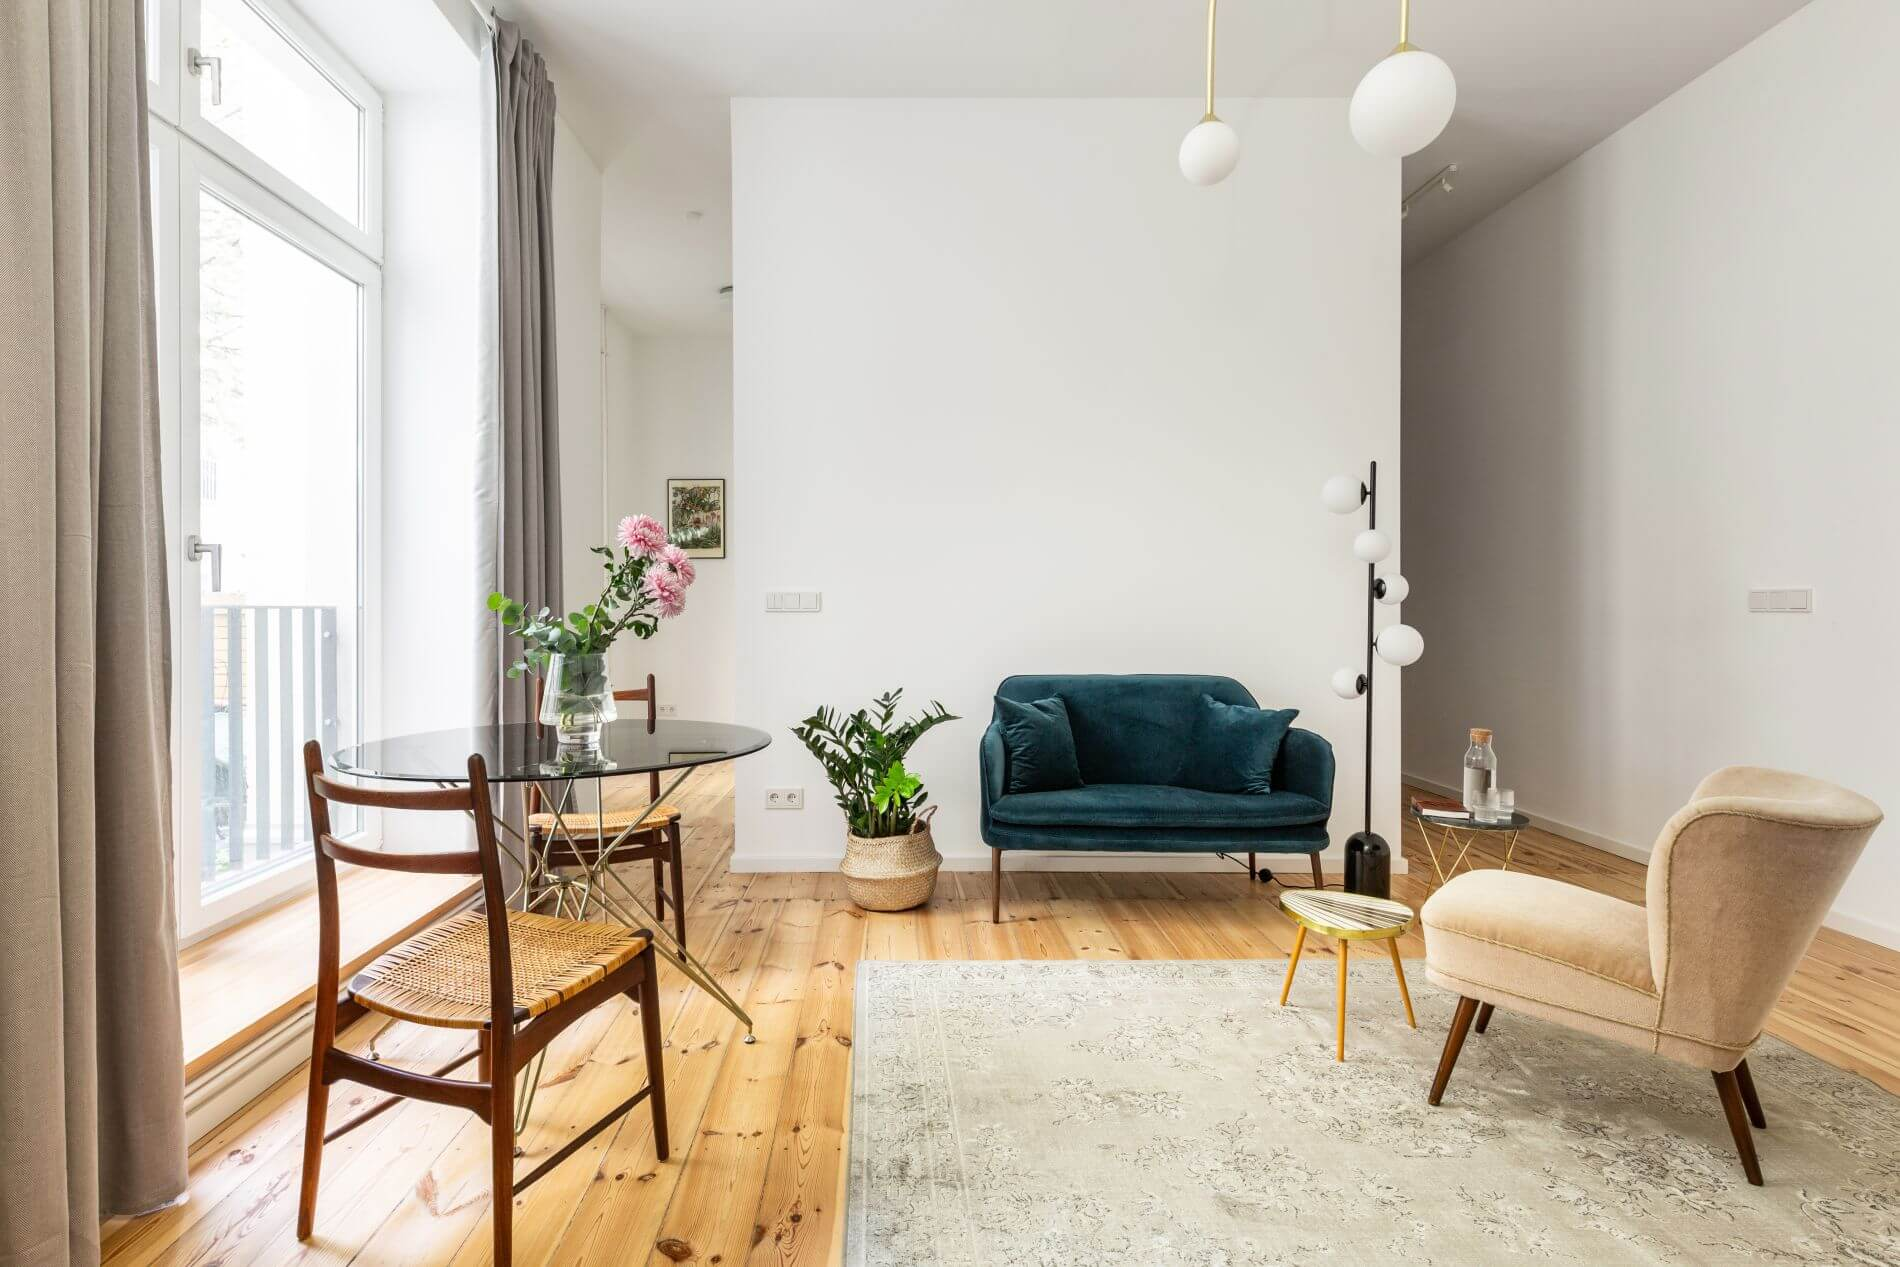 Furnished property in Berlin that can be booked instantly